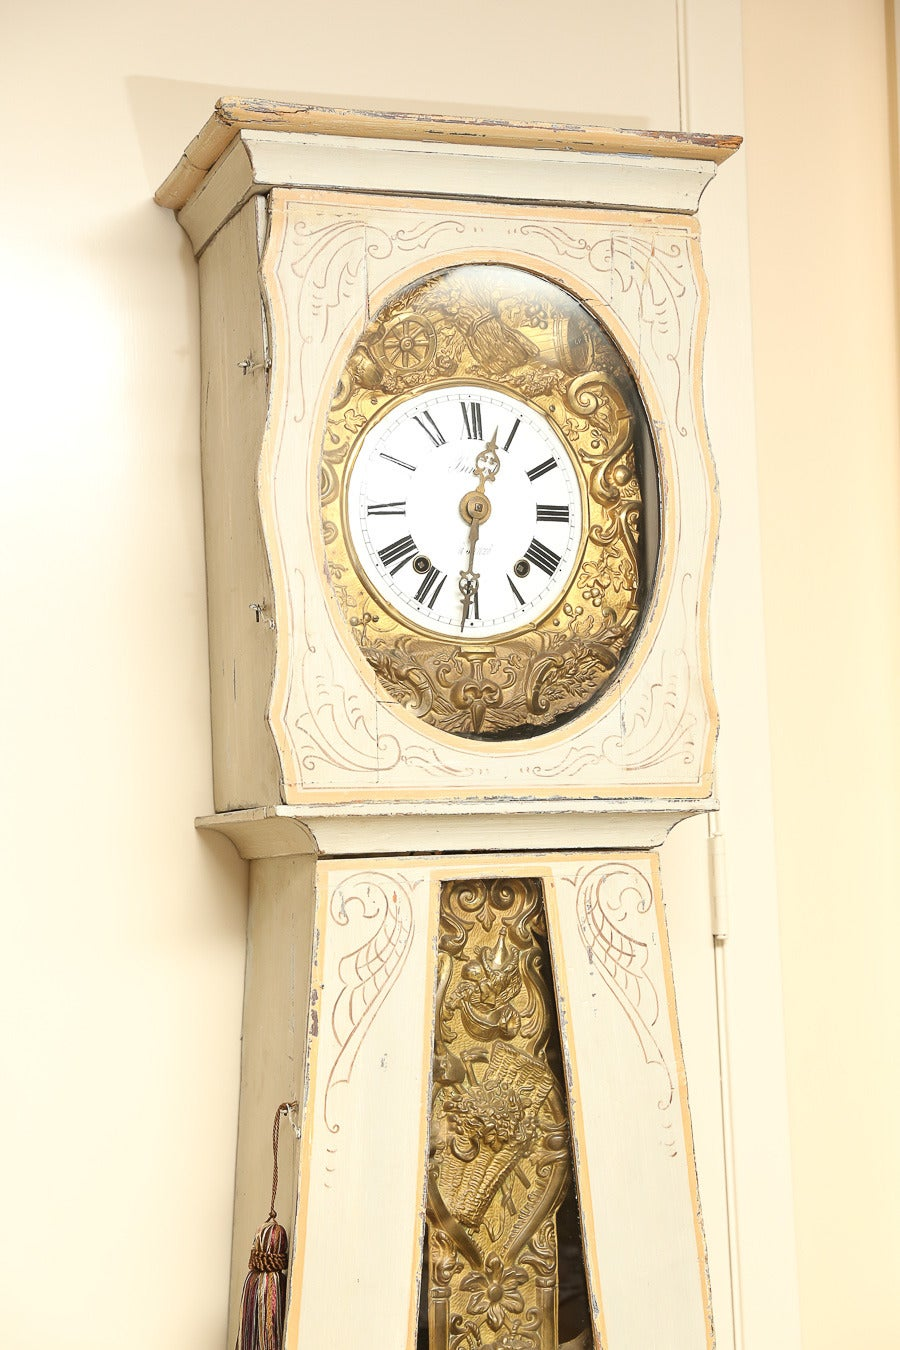 Whitewashed French clock painted with ribbons and country scene in blue.